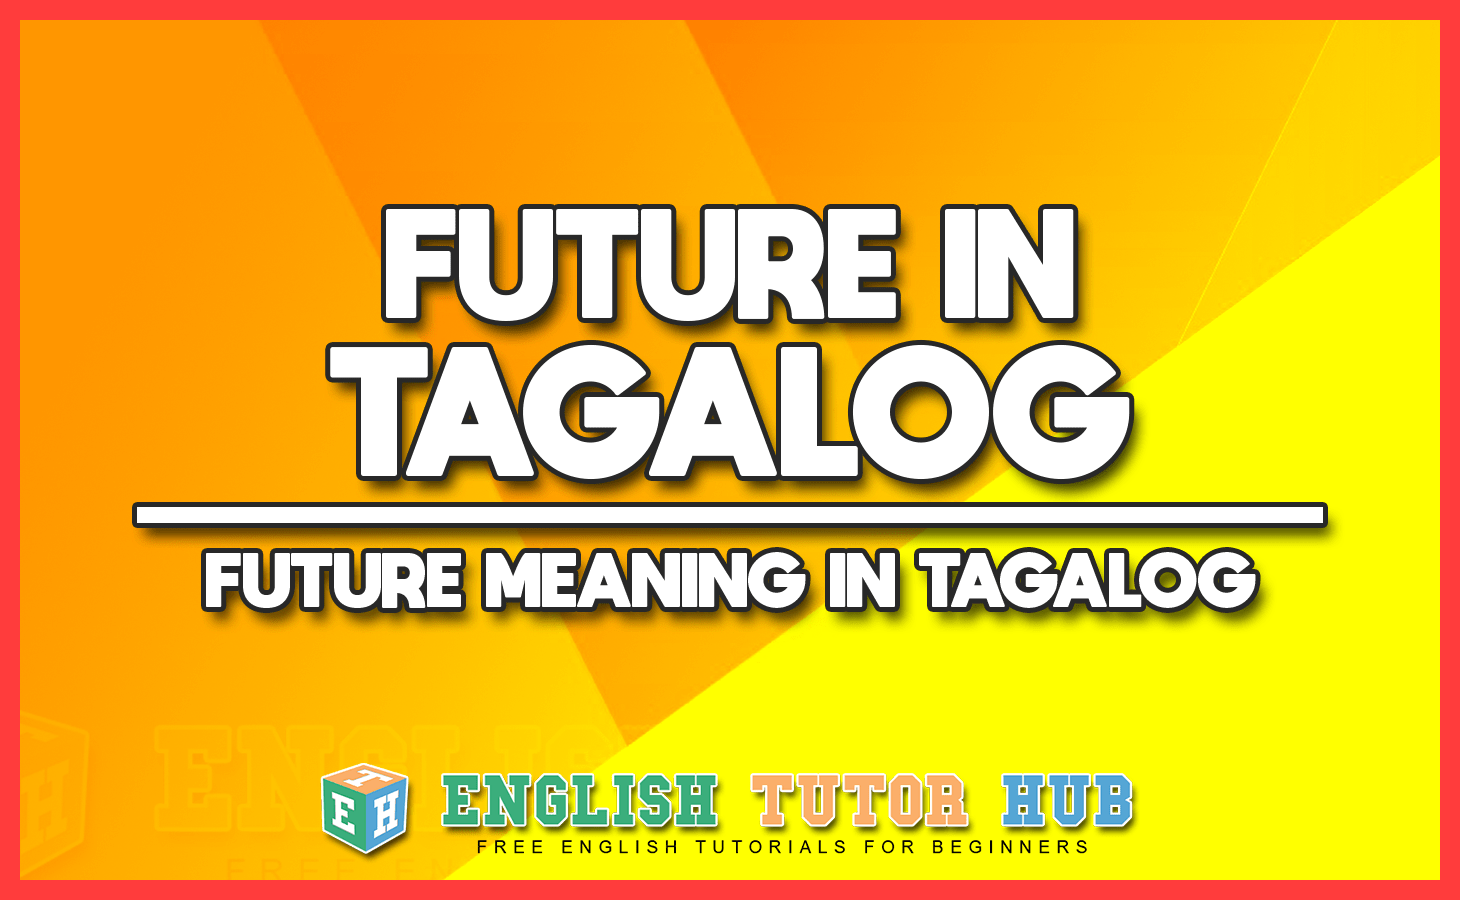 FUTURE IN TAGALOG - FUTURE MEANING IN TAGALOG